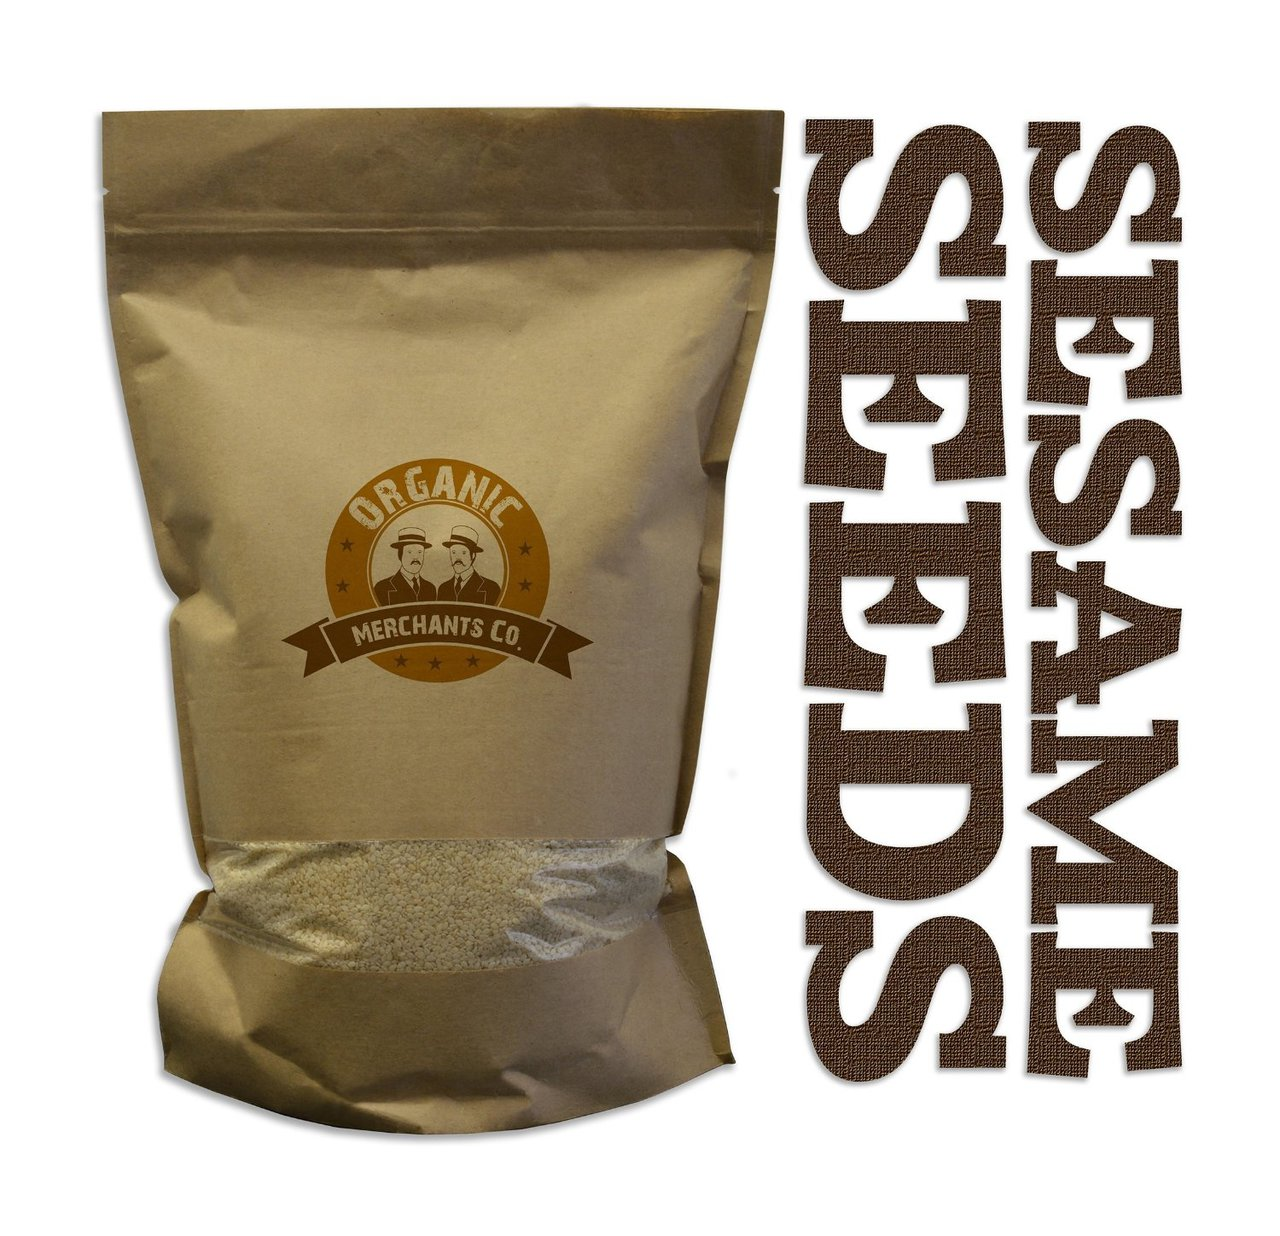 Organic Hulled Toasted Sesame Seeds - 4lb Bag - Kosher, NON GMO, Gluten Free